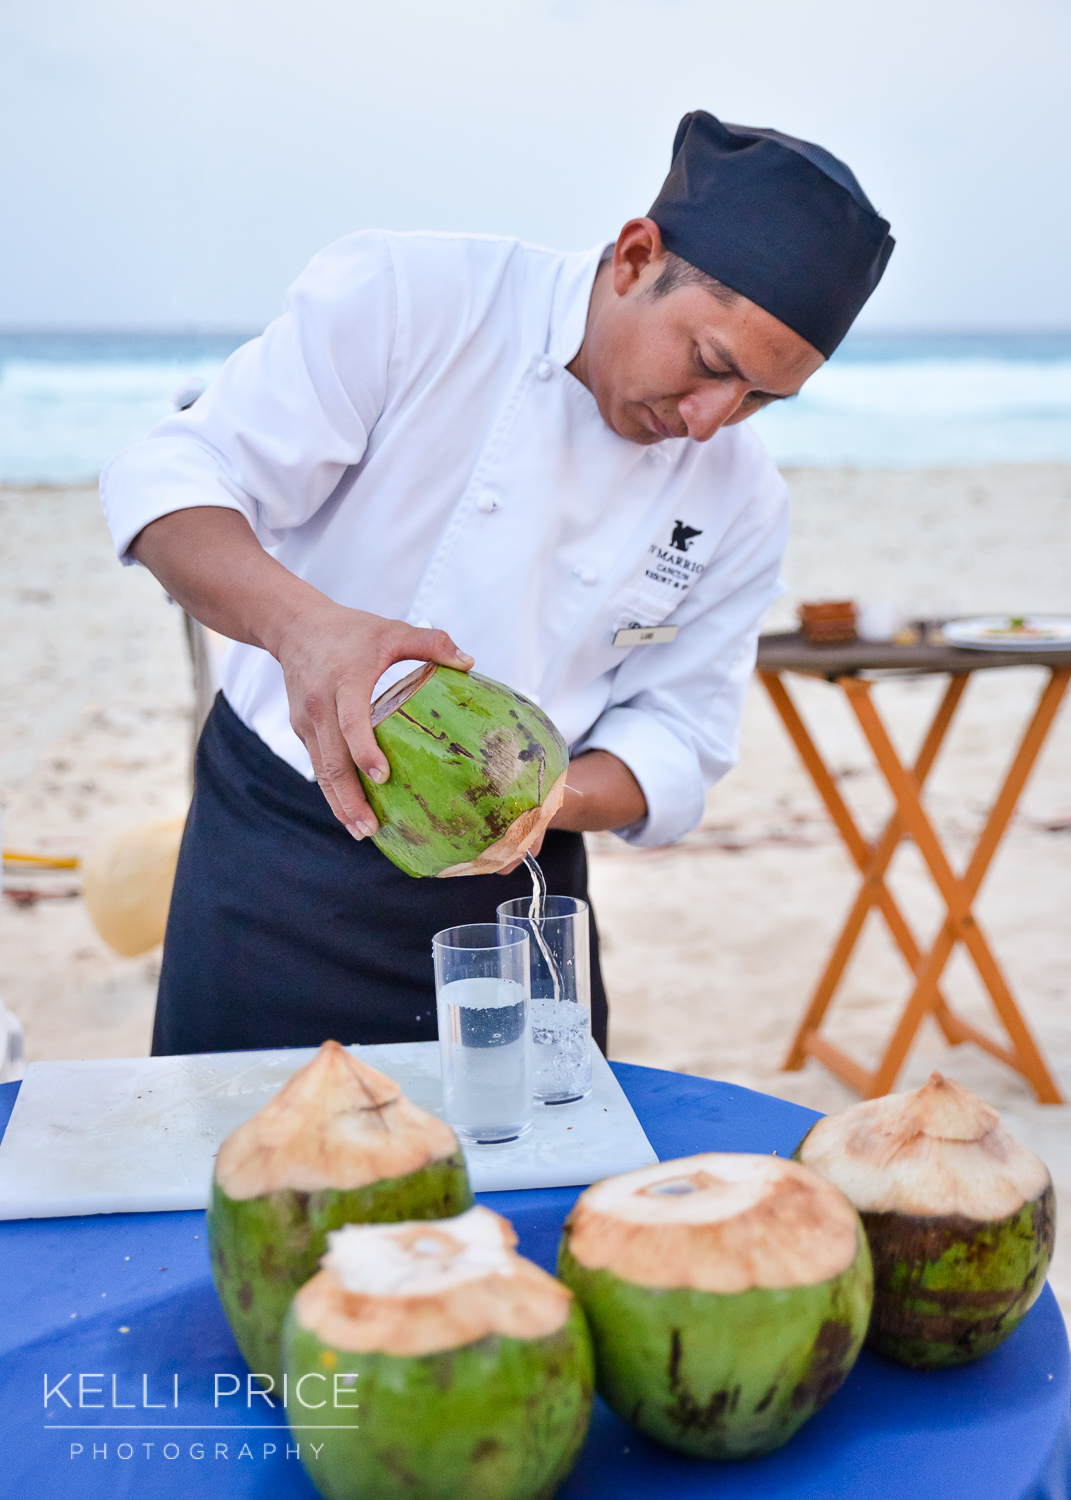 Welcome Reception Drink Service at JW Marriott - Cancun, Mexico